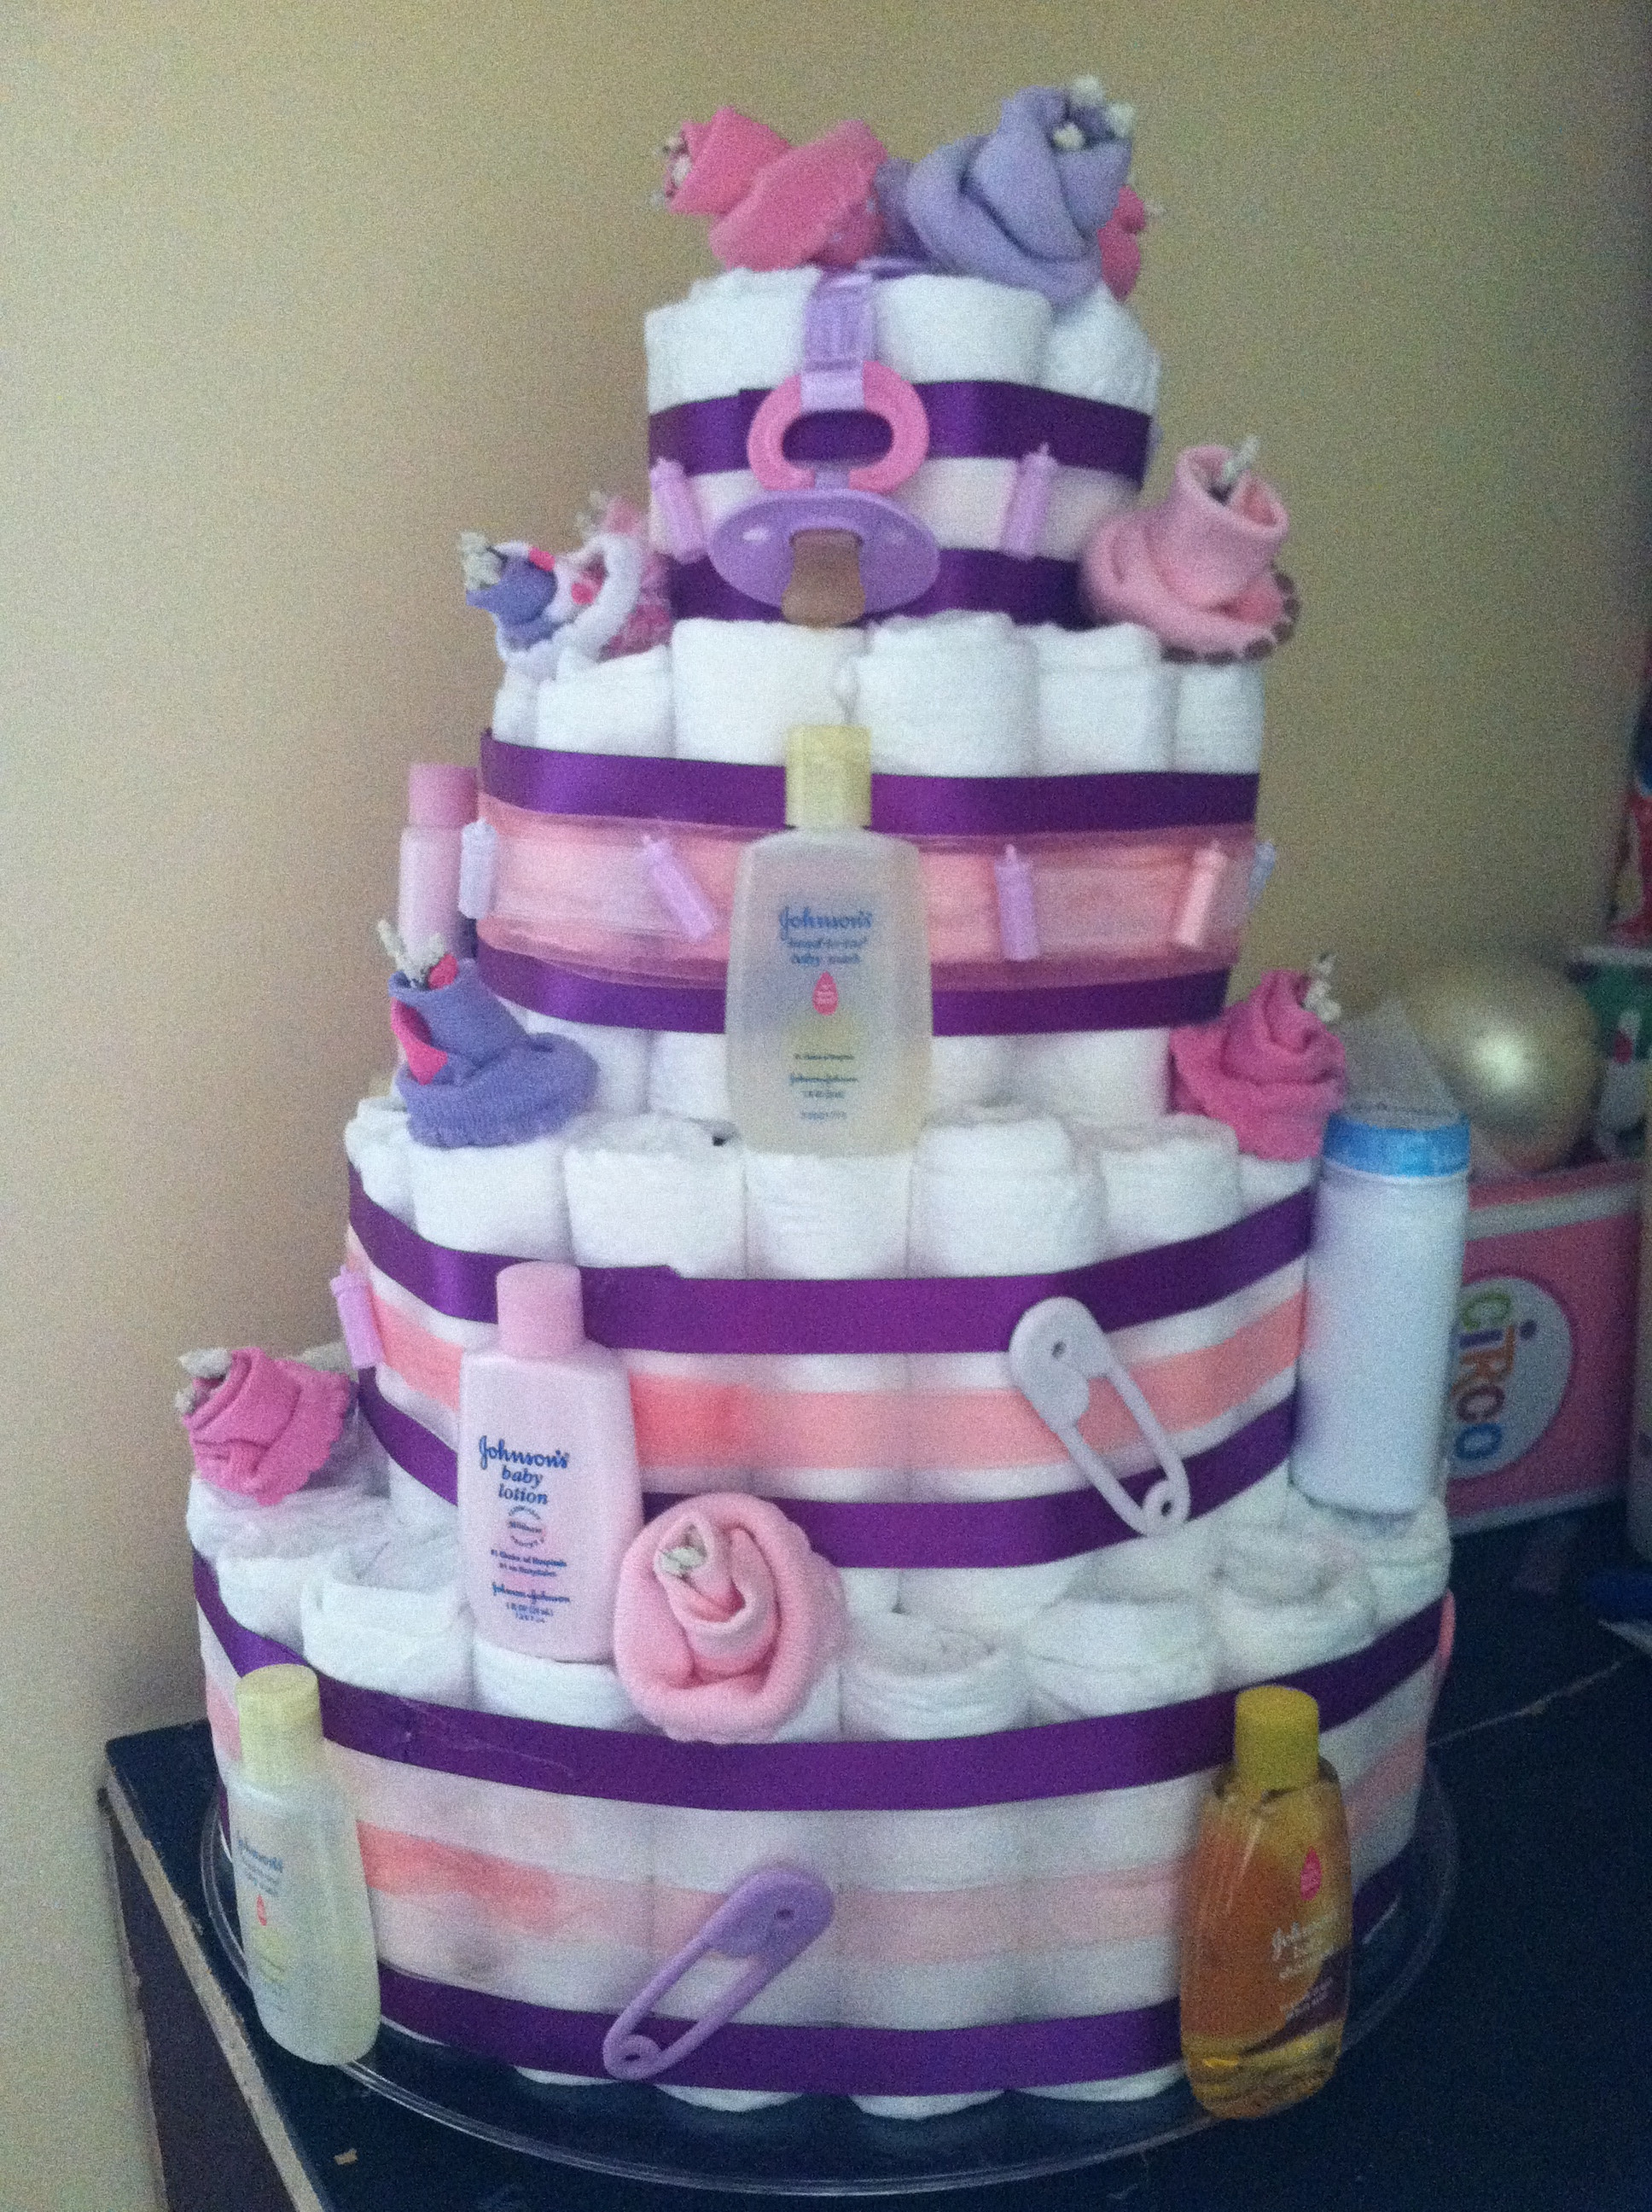 How To Make Diaper Cake Centerpieces For A Baby Shower d